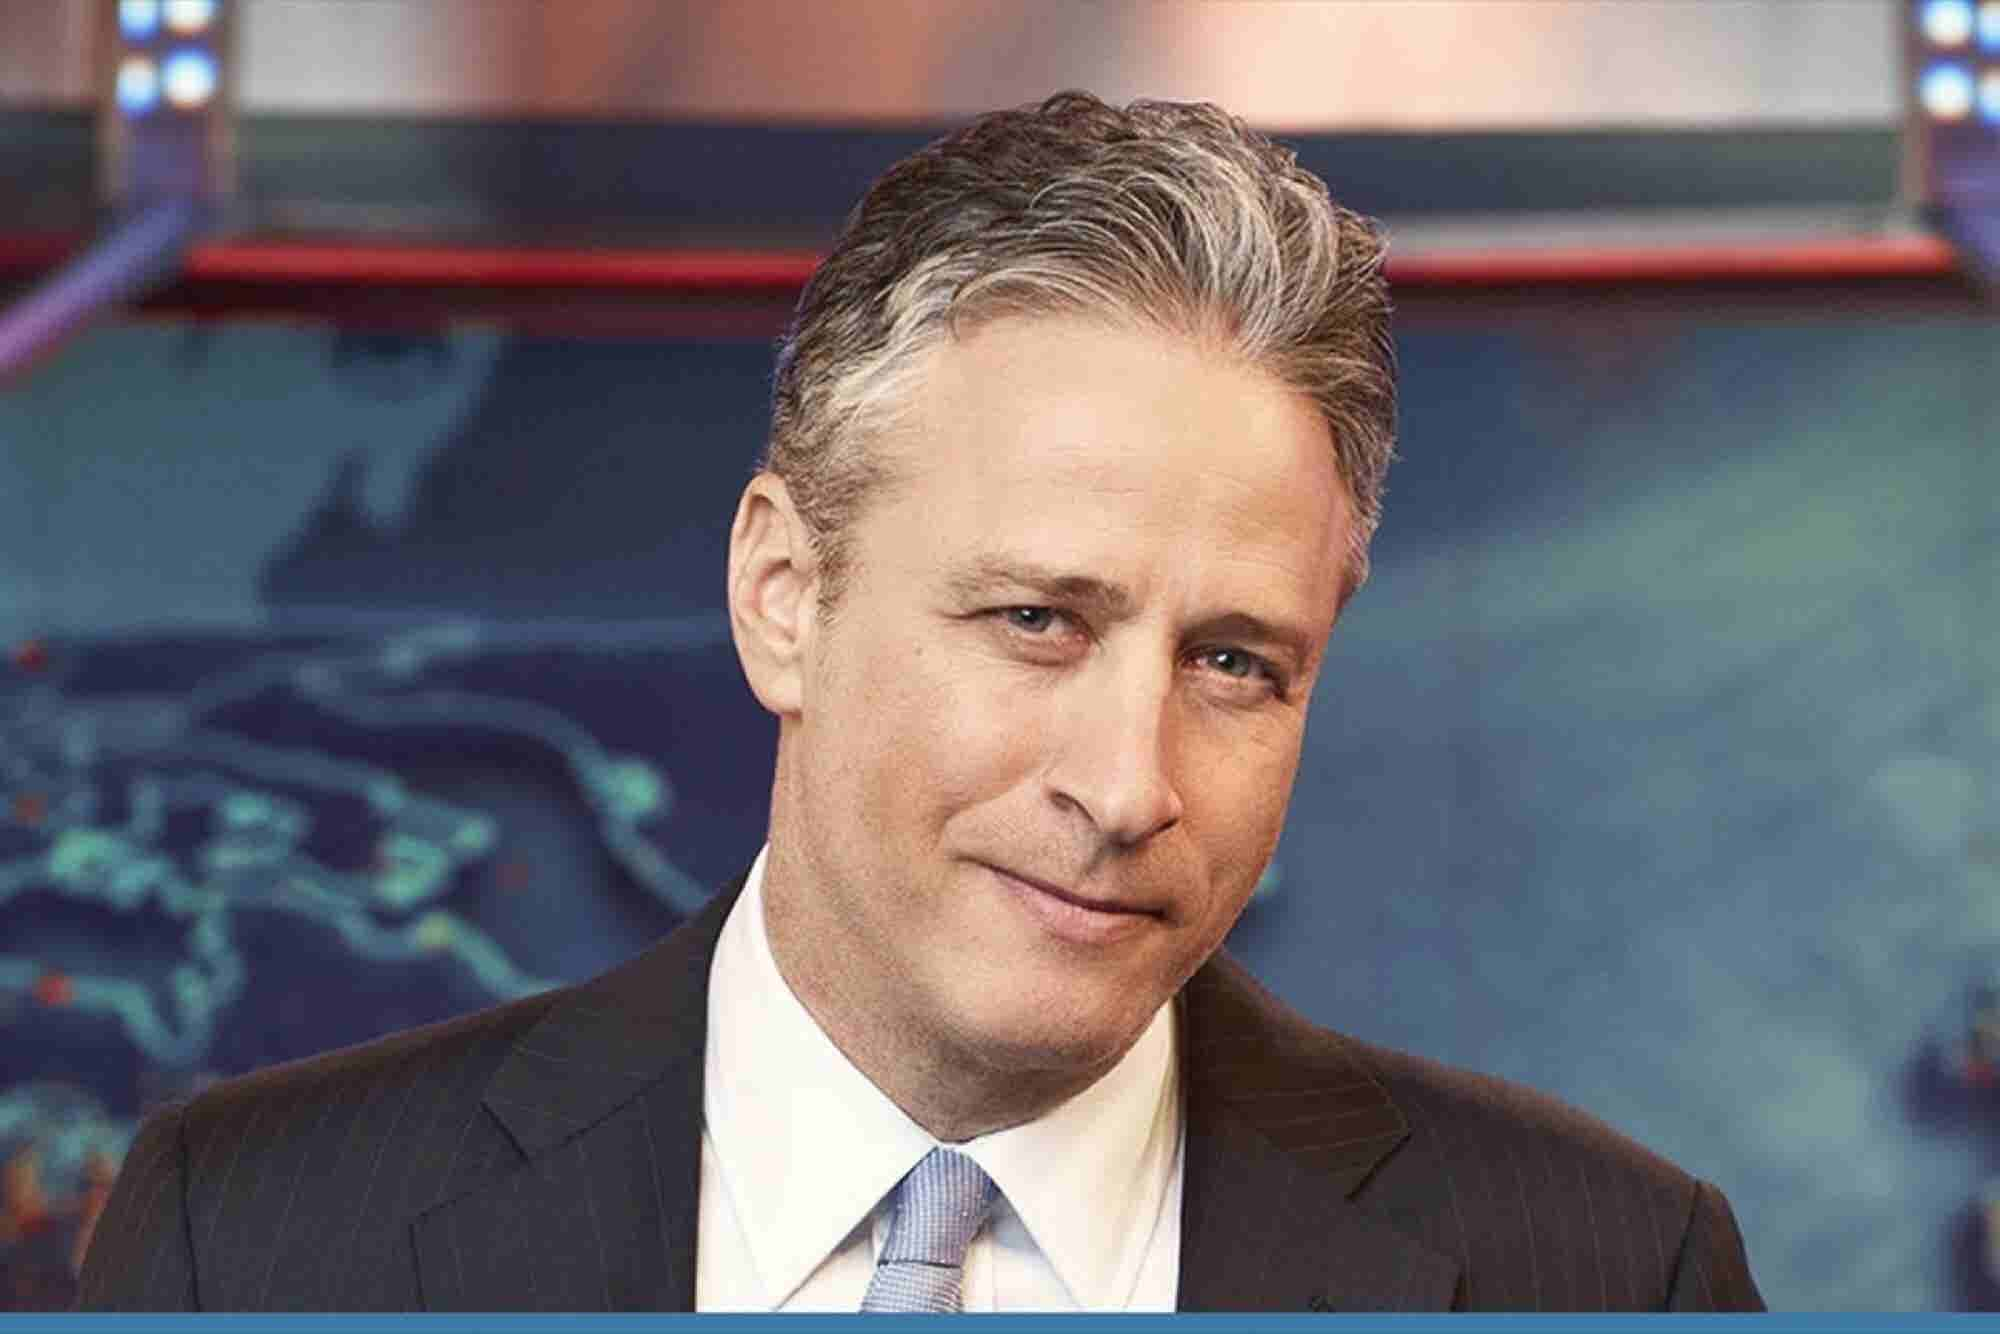 7 Enduring Leadership Lessons From 'The Daily Show's' Jon Stewart